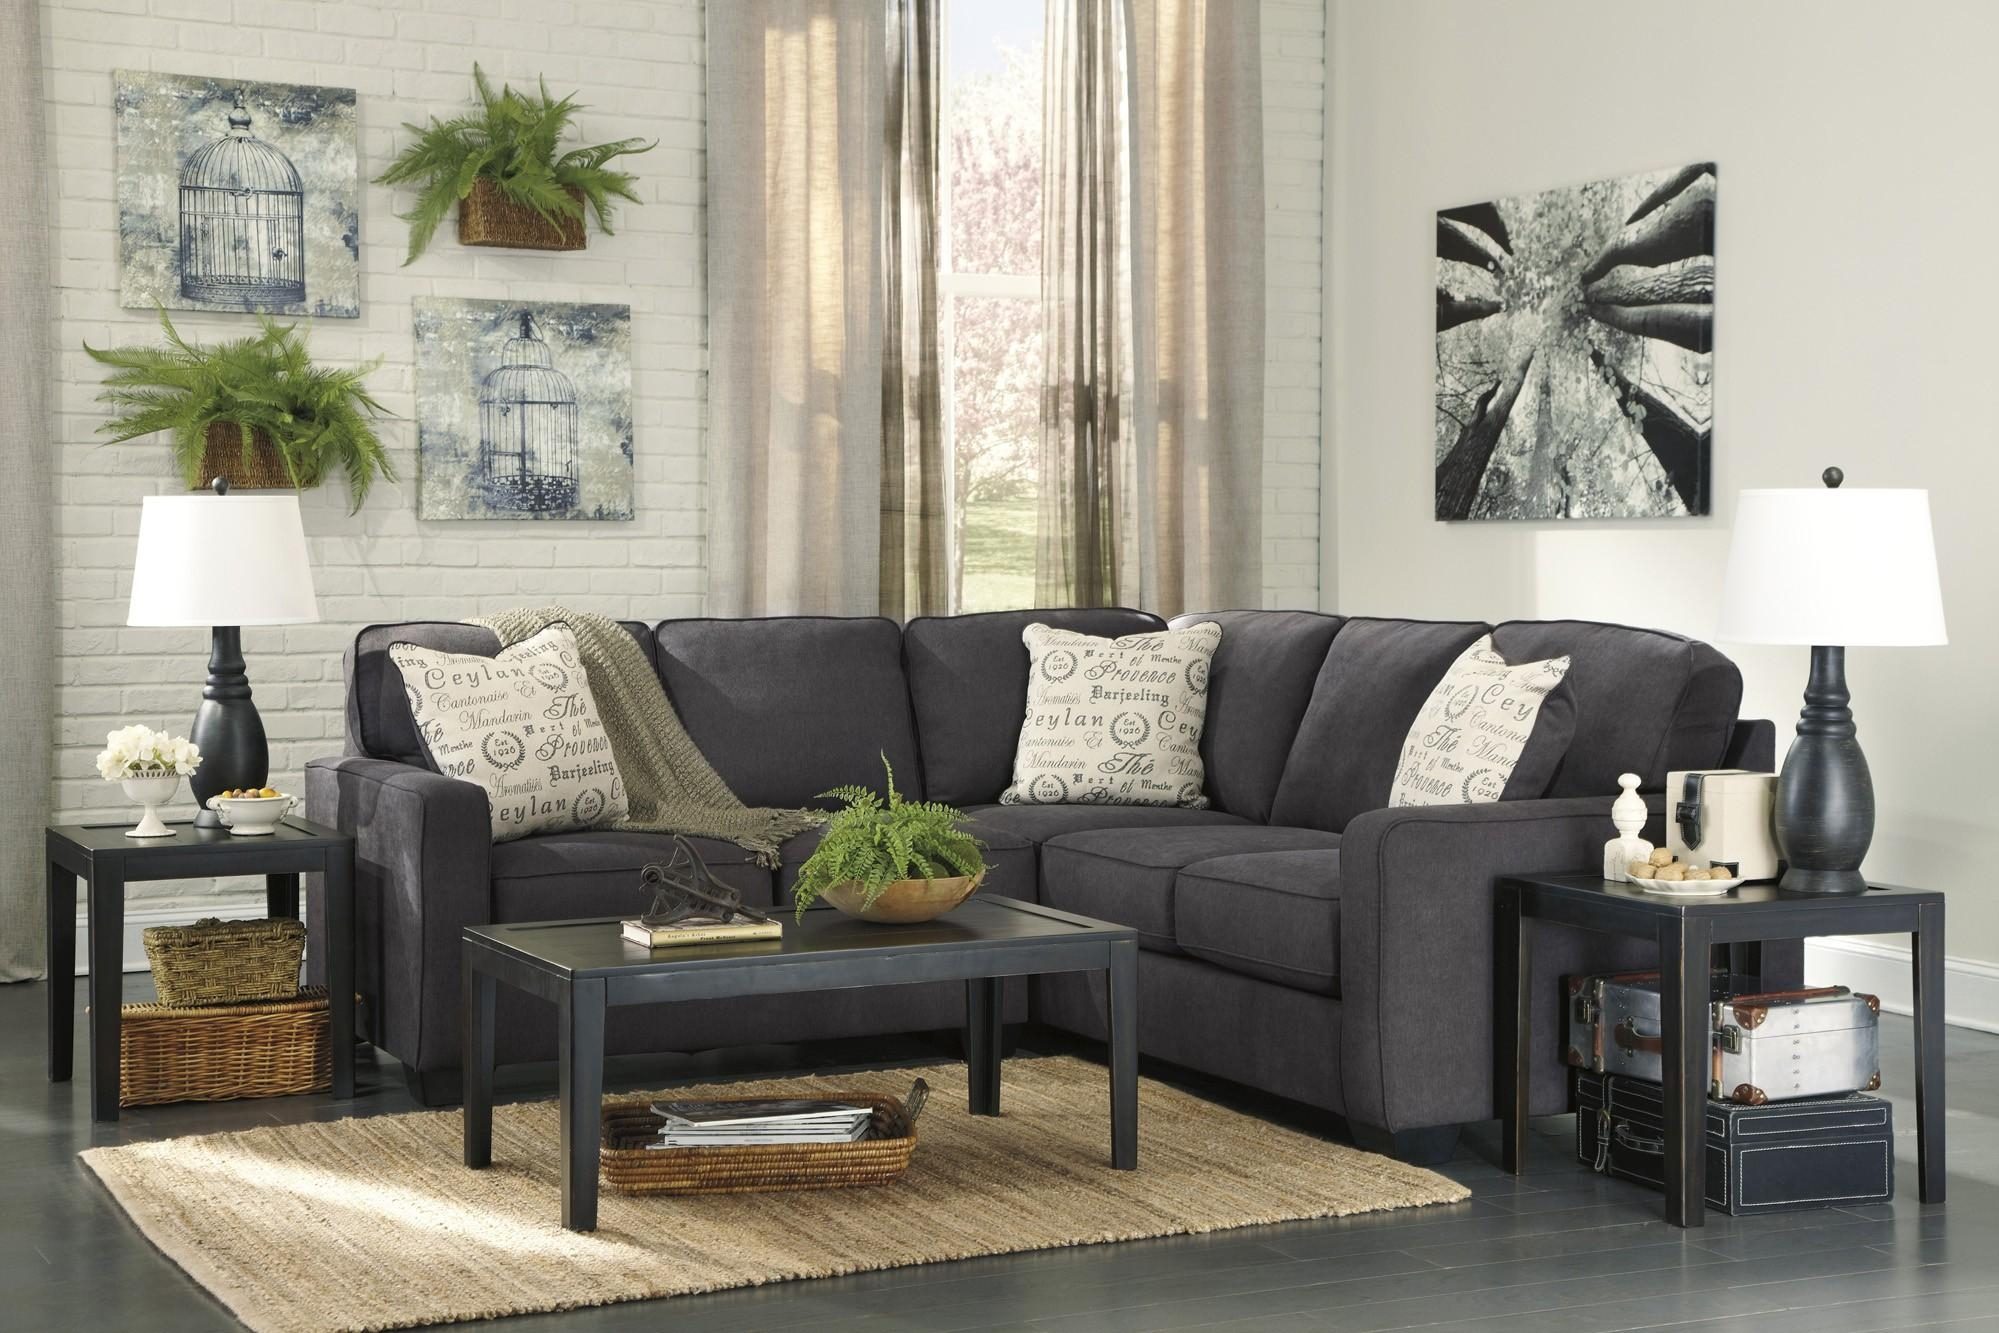 Interior: Gorgeous Lady Charcoal Sectional For Living Room With Regard To Individual Piece Sectional Sofas (Image 10 of 20)